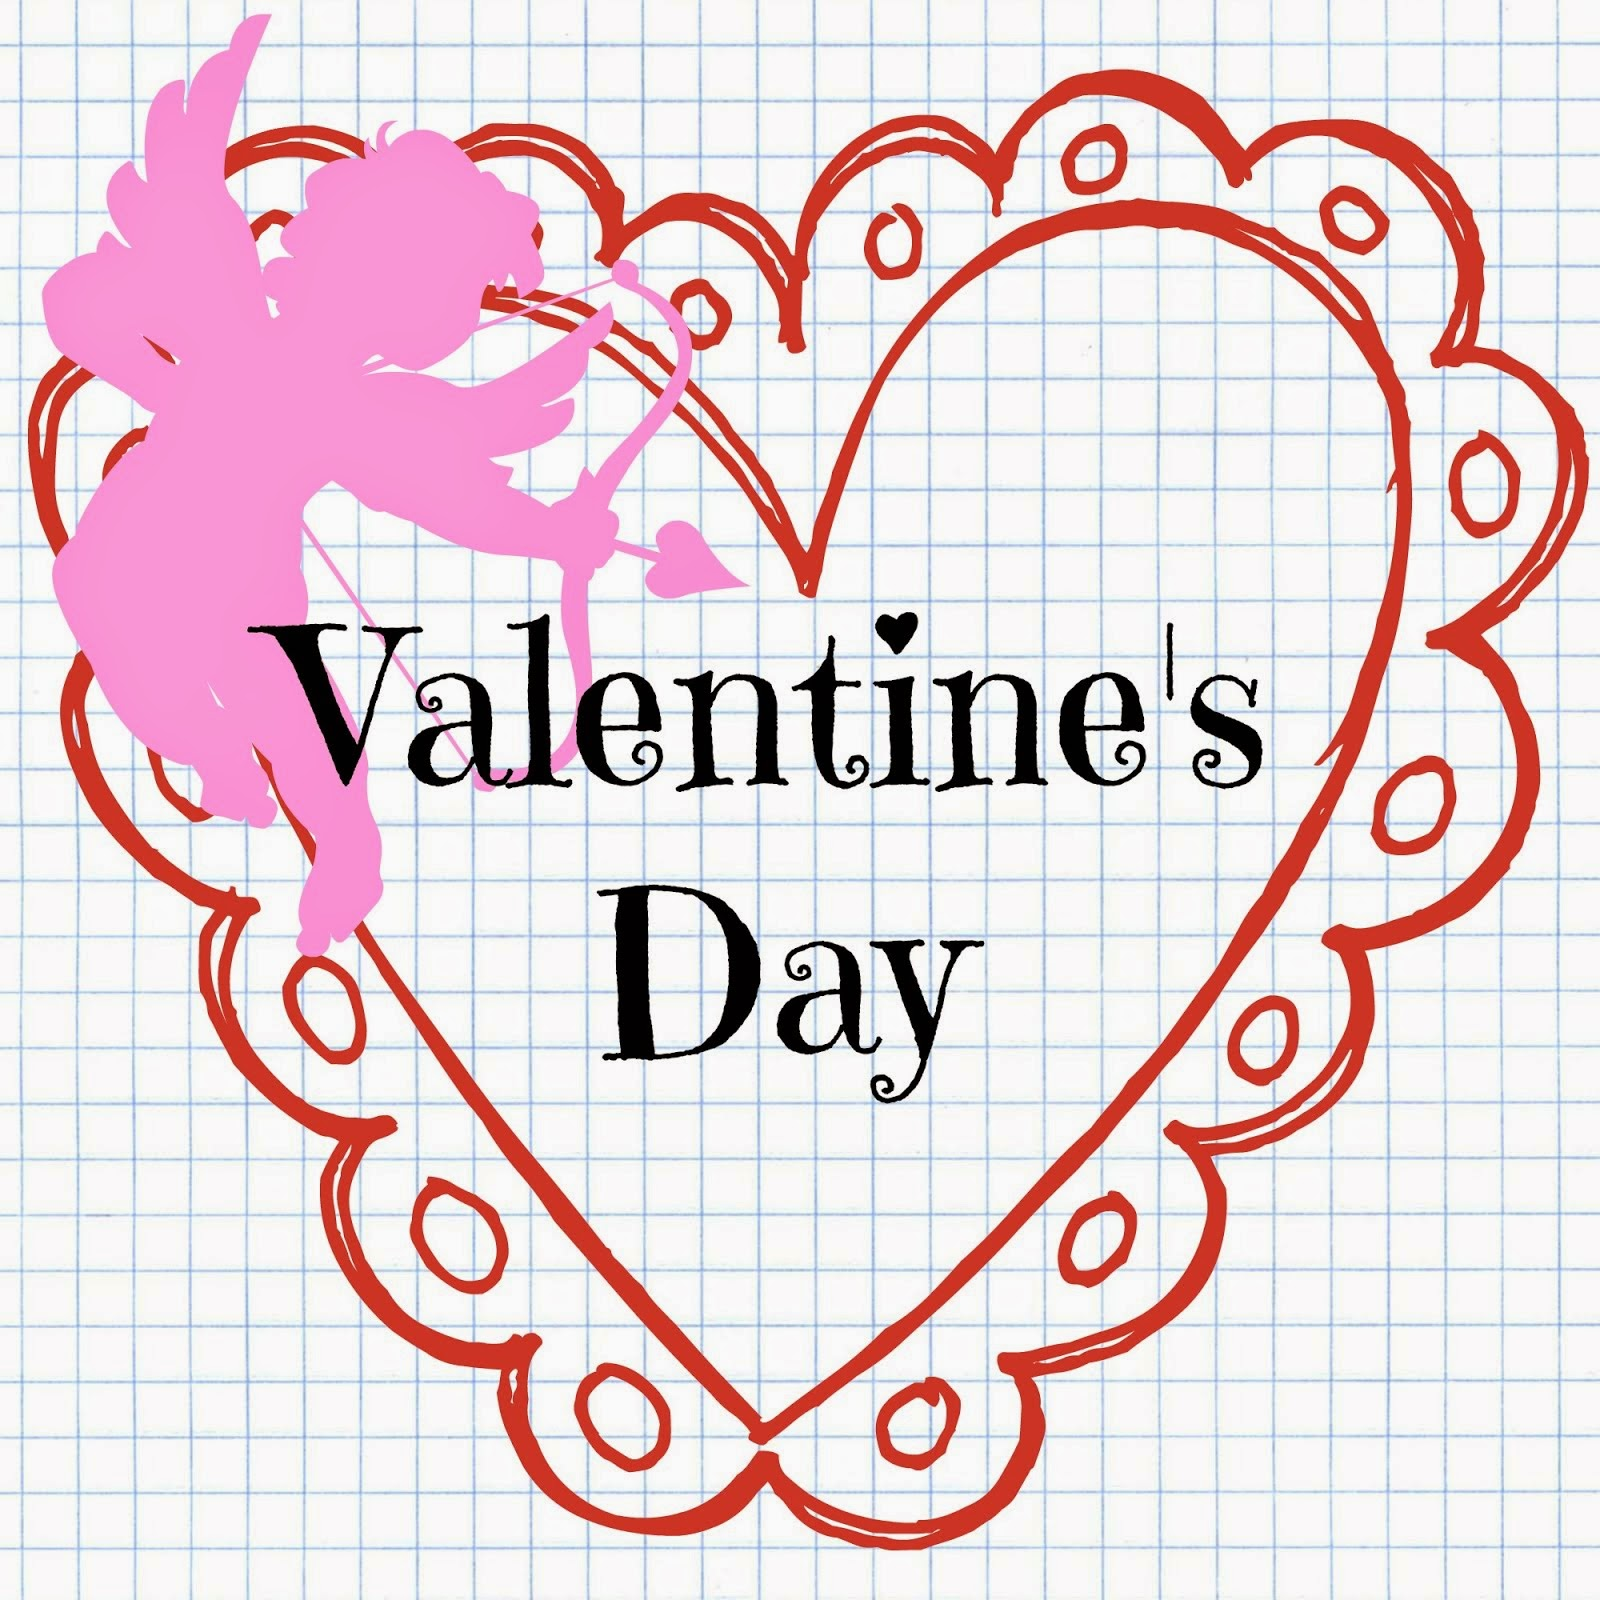 Our Valentine's Day Posts